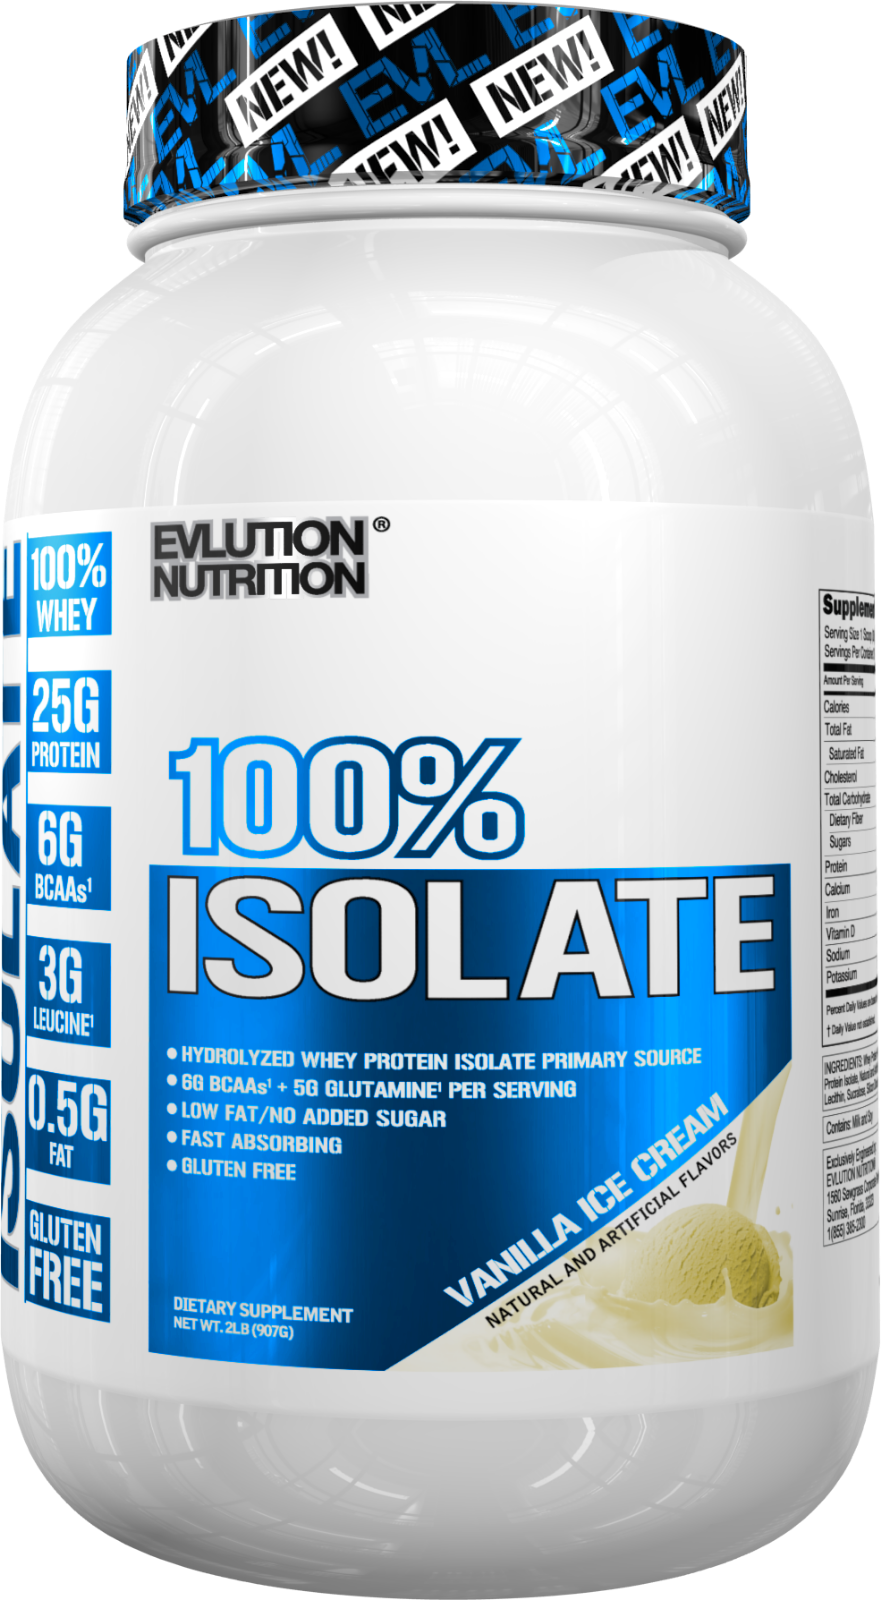 Evlution Nutrition 100% Isolate | Hydrolyzed Whey Isolate Protein Powder